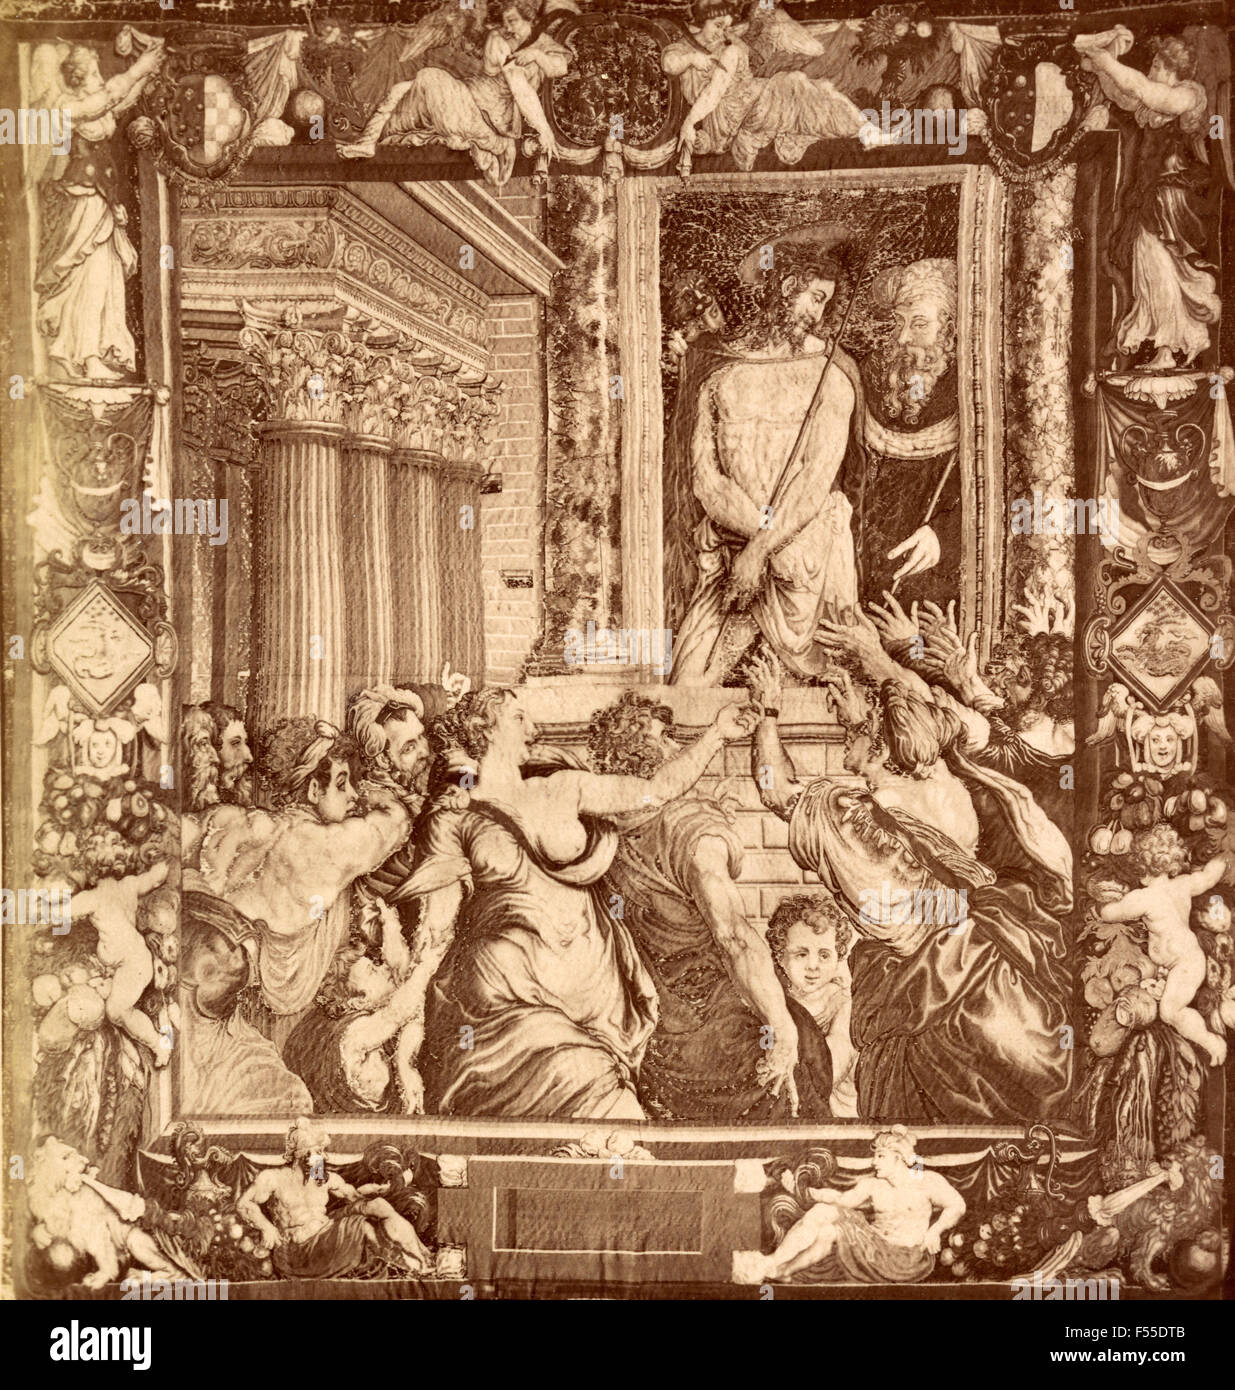 Tapestry Gallery, Florence: Jesus Christ shown to the people by Pilate, tapestry N. Karcher, cartoon by C. Salviati - Stock Image